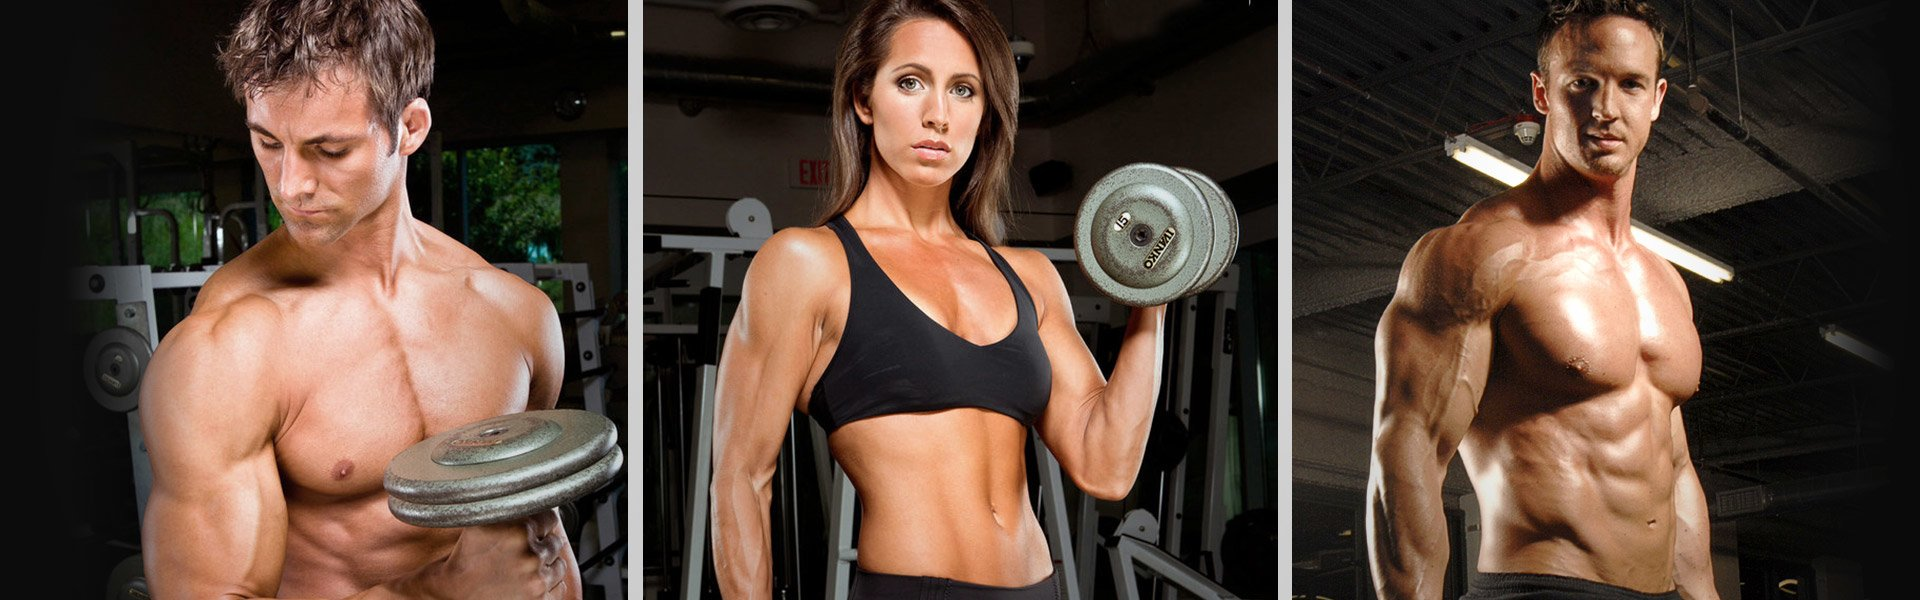 How many mg of garcinia cambogia should i take to loss weight